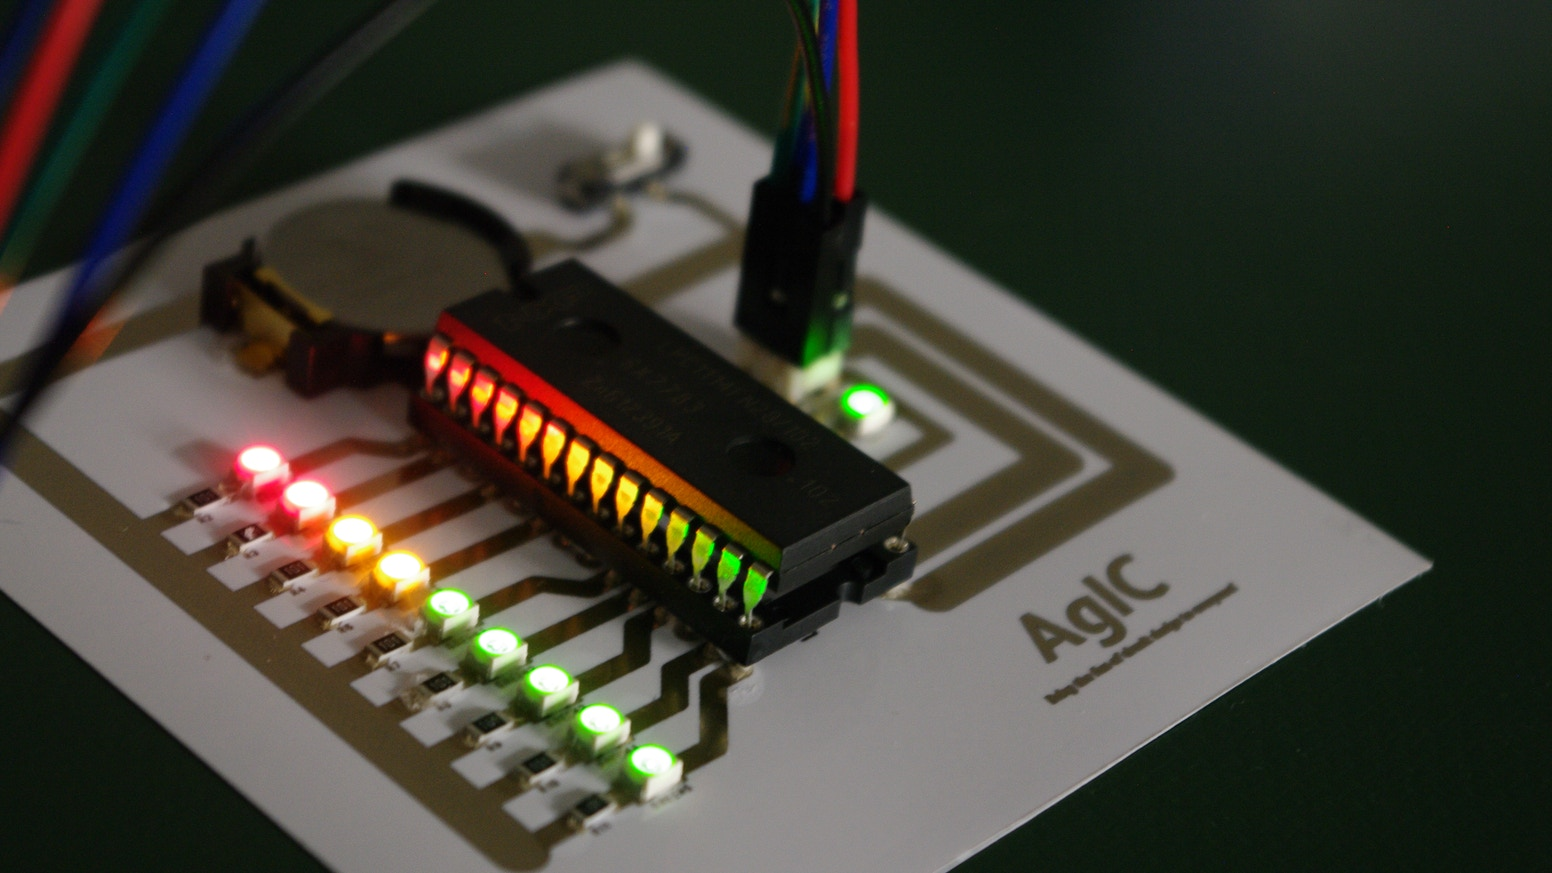 AgIC Print - Printing circuit boards with home printers by ... on